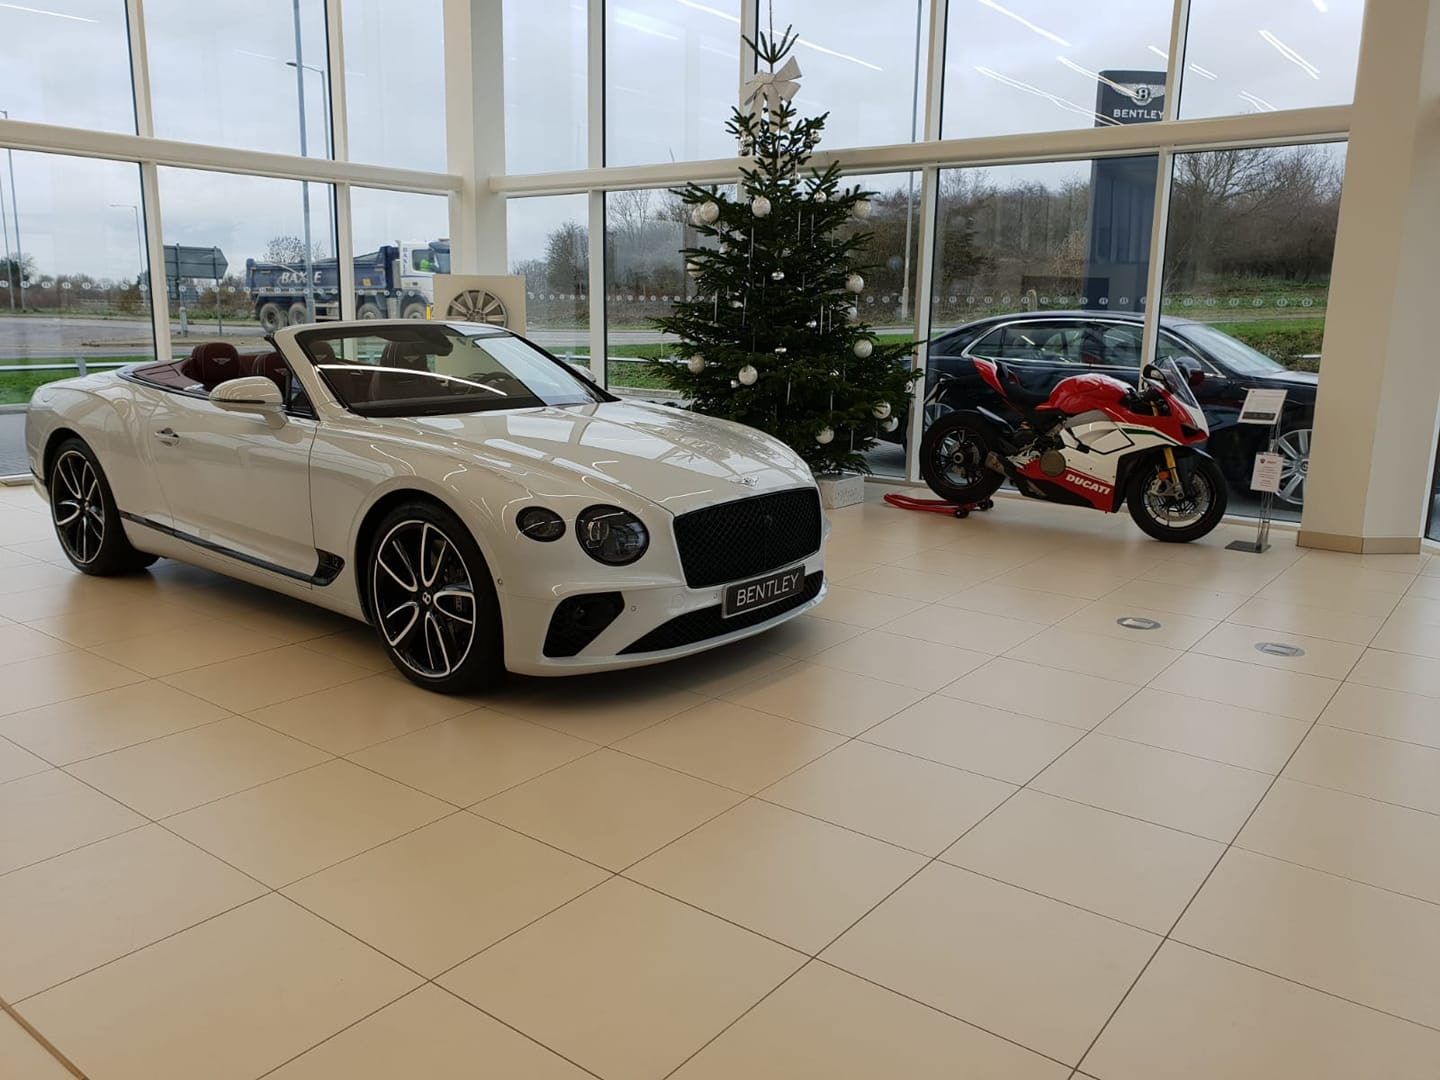 The perfect companions together at Vindis Bentley. The new Bentley Contintental GTC and Panigale V4 Speciale. The ultimate expression of Speed, presence and prestige. #bentley #ducati